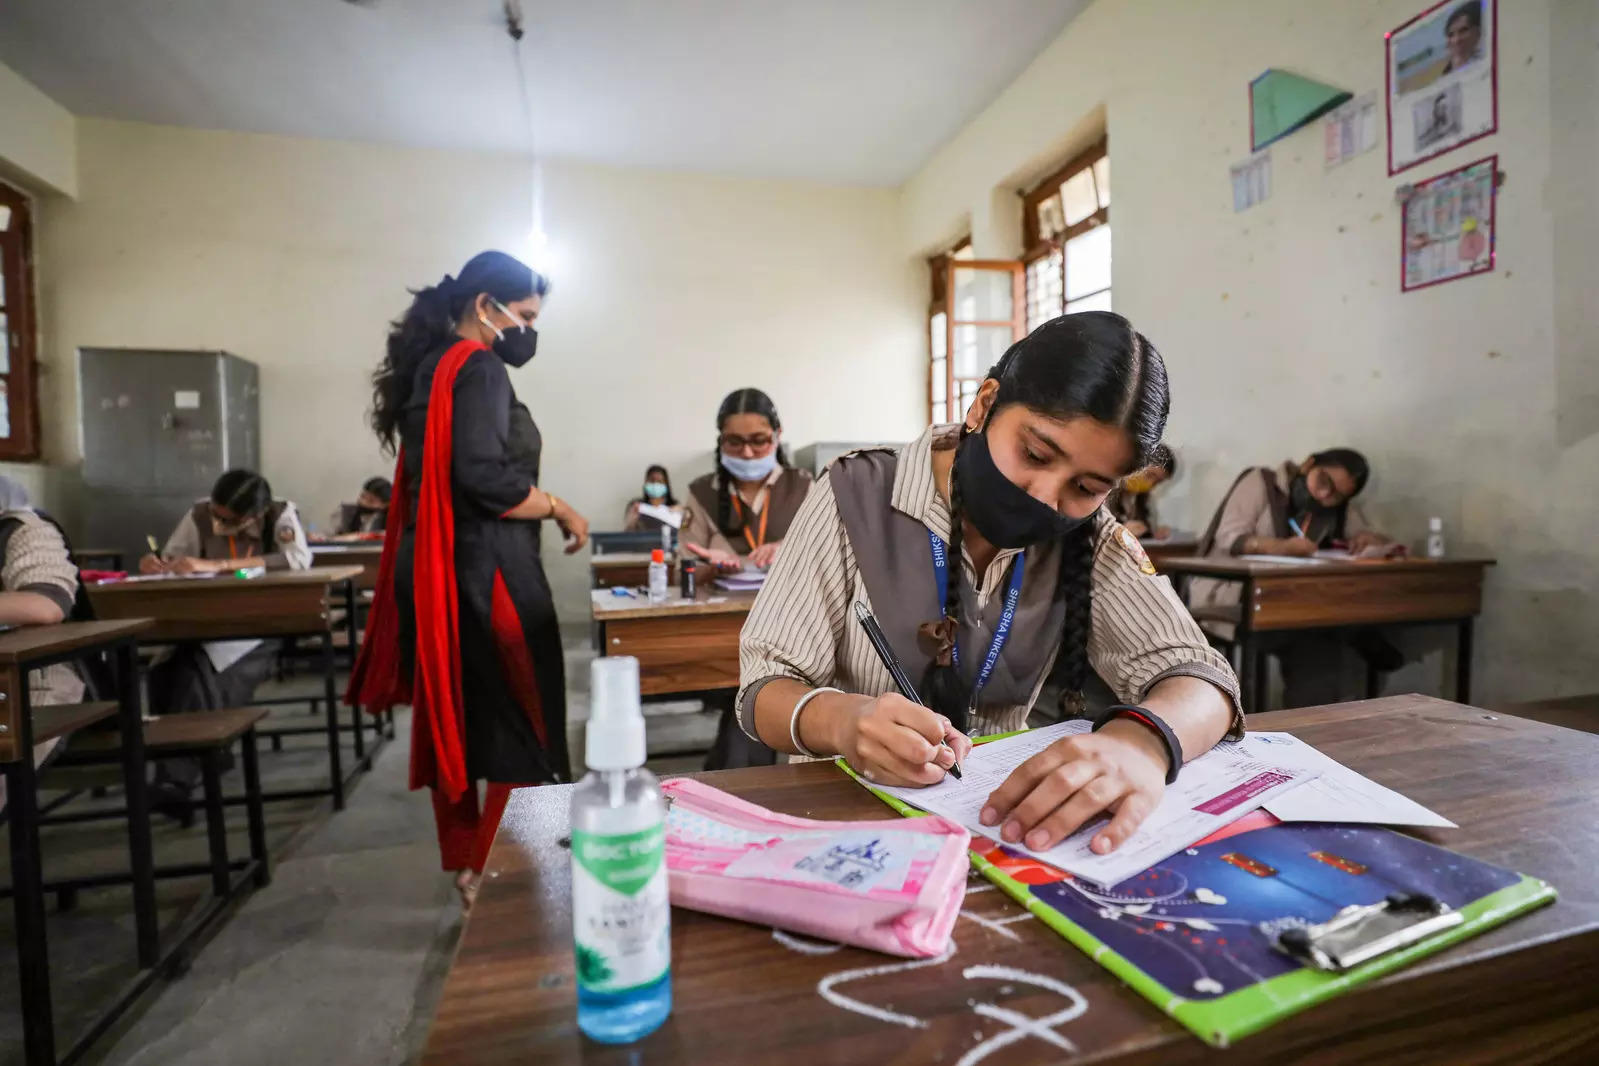 CBSE class XII board exams likely to be held from July 15-August 26